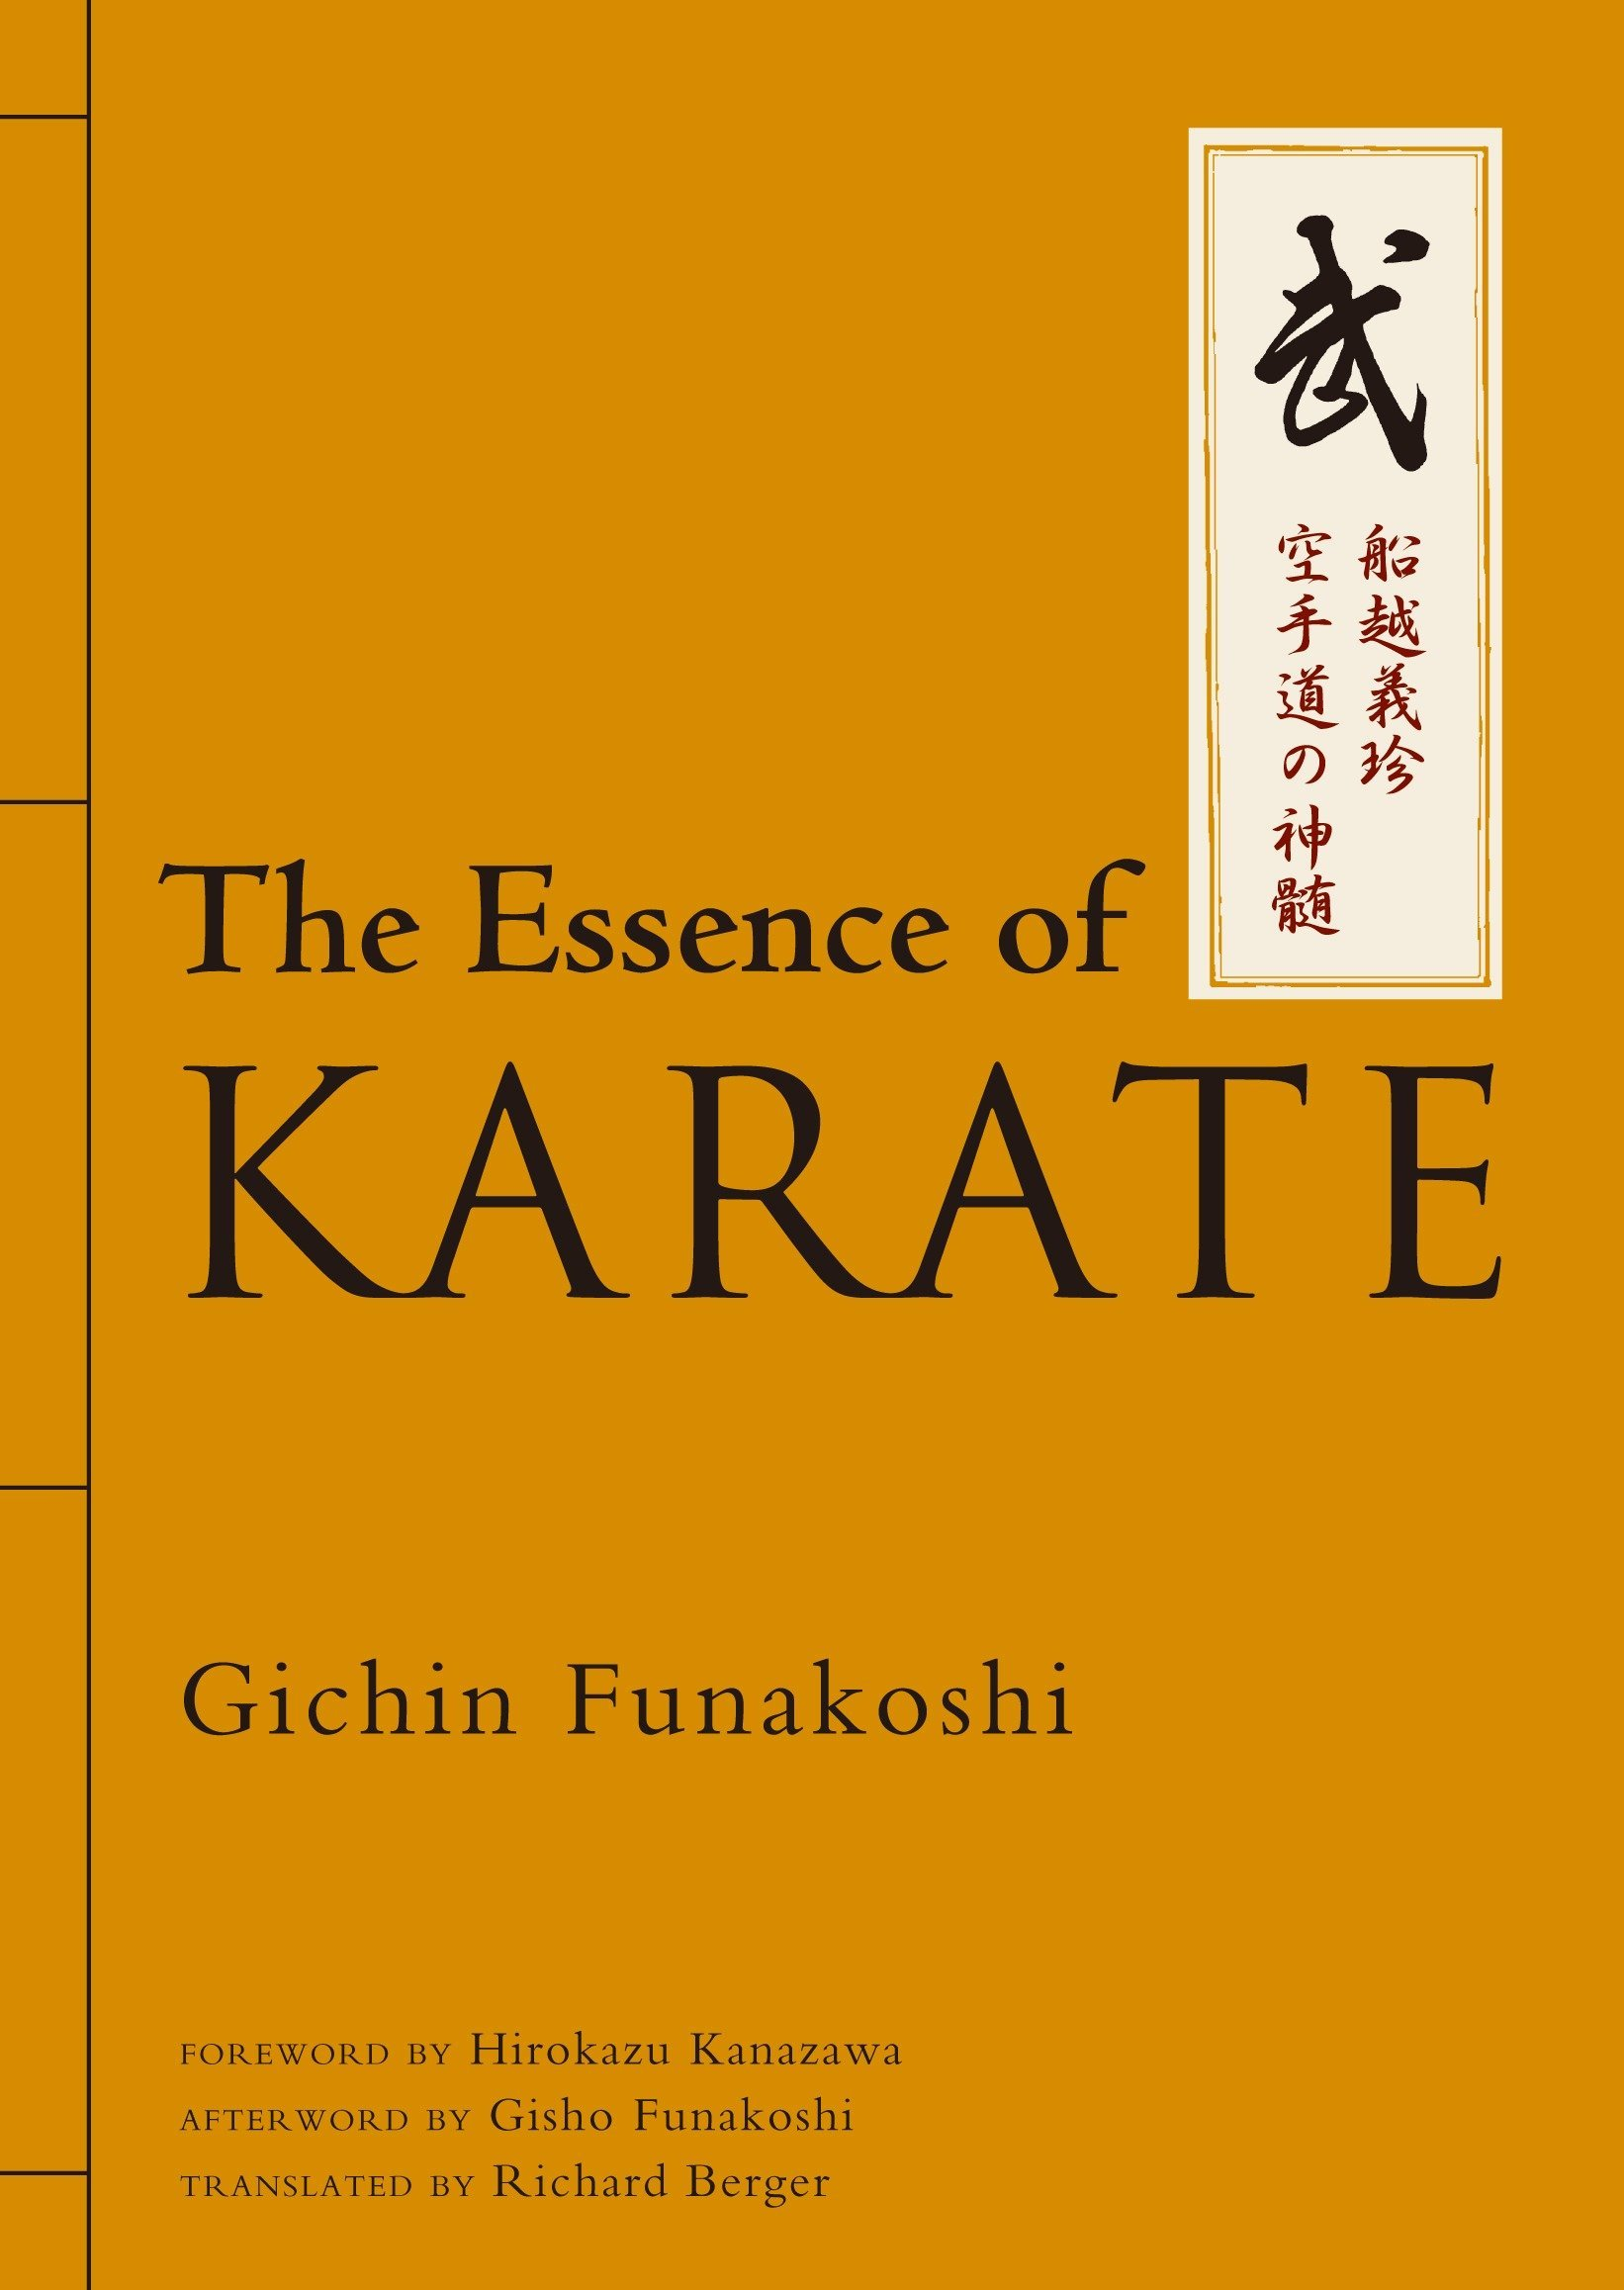 The Essence of Karate Hardcover – Jun 7 2013